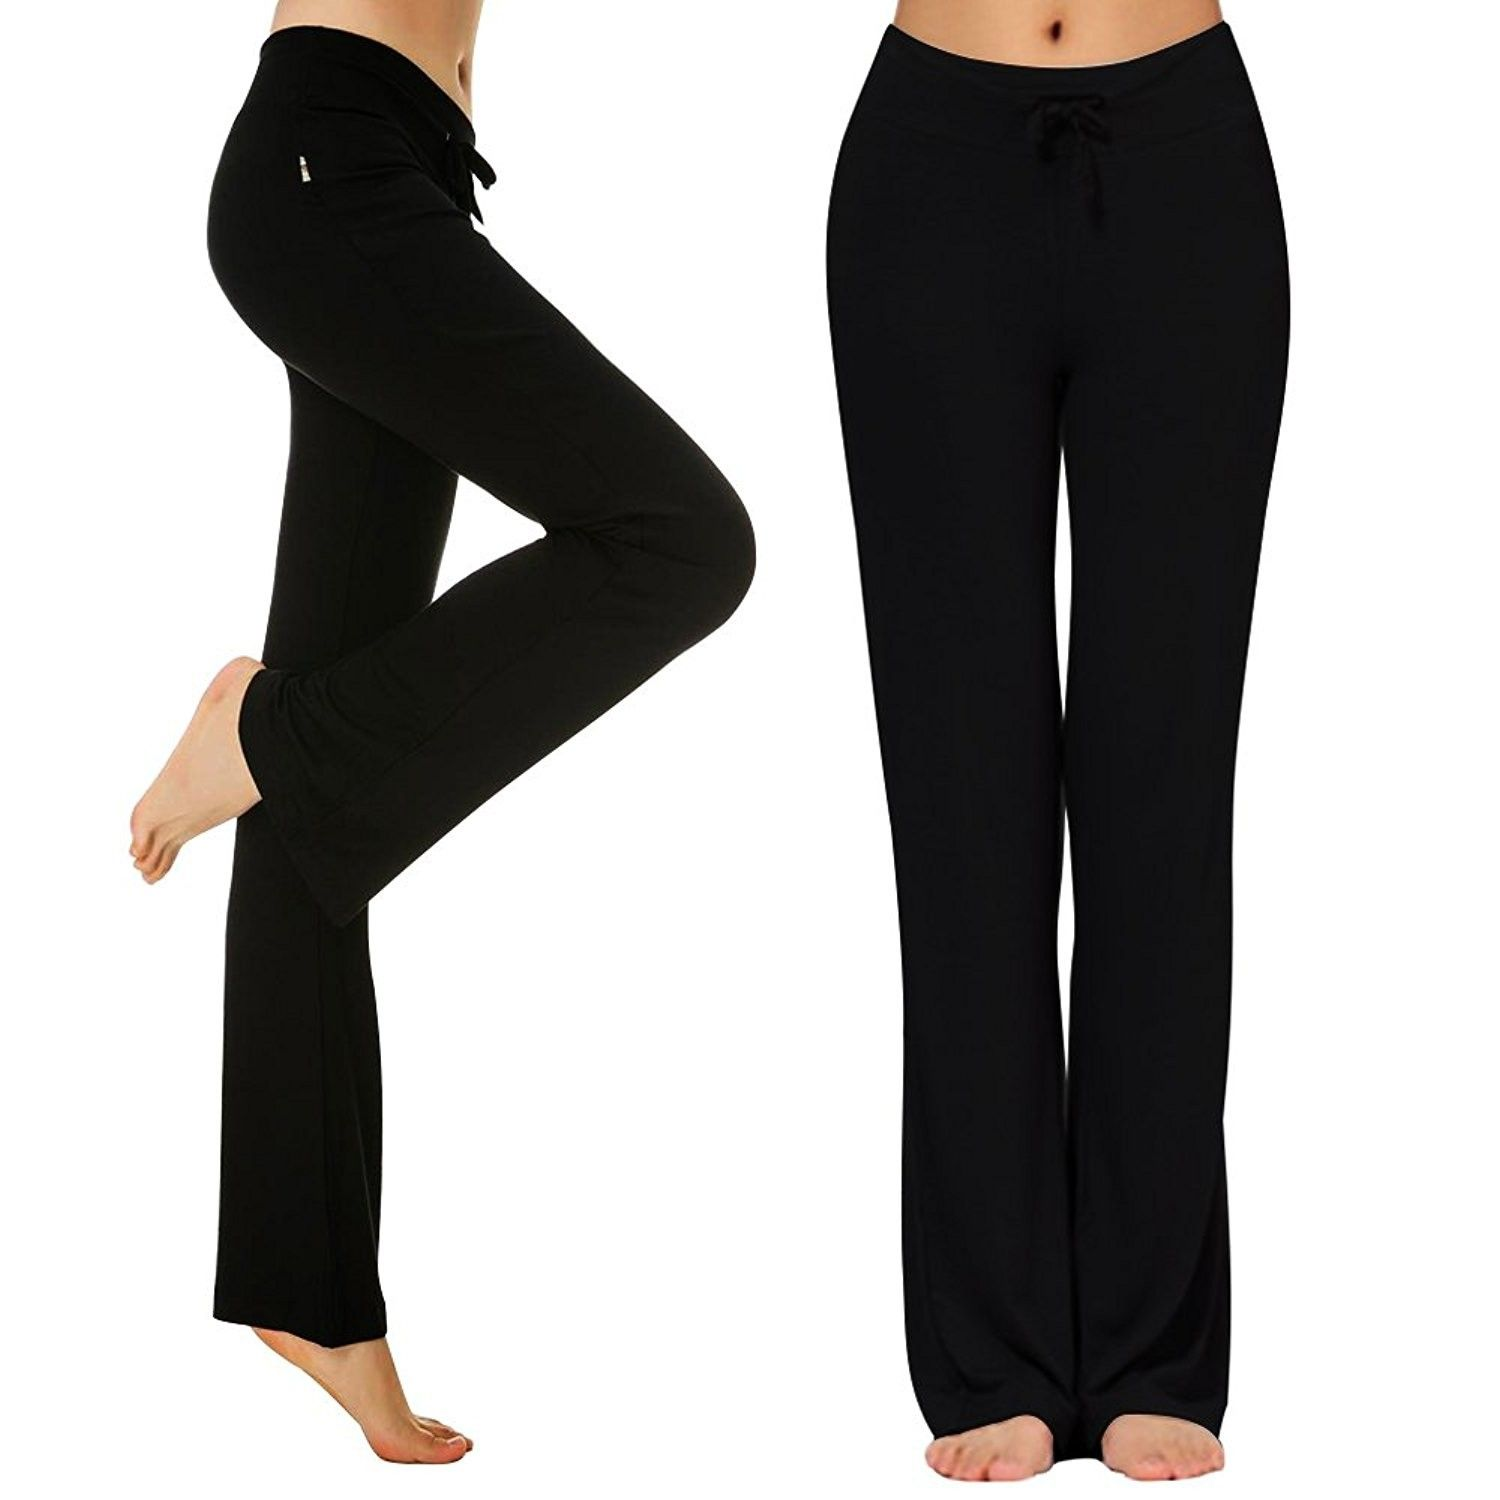 Womens High Waist Wide Leg Pants Loose Leggings Trousers Lace Stretch Wide Leg Yoga Through